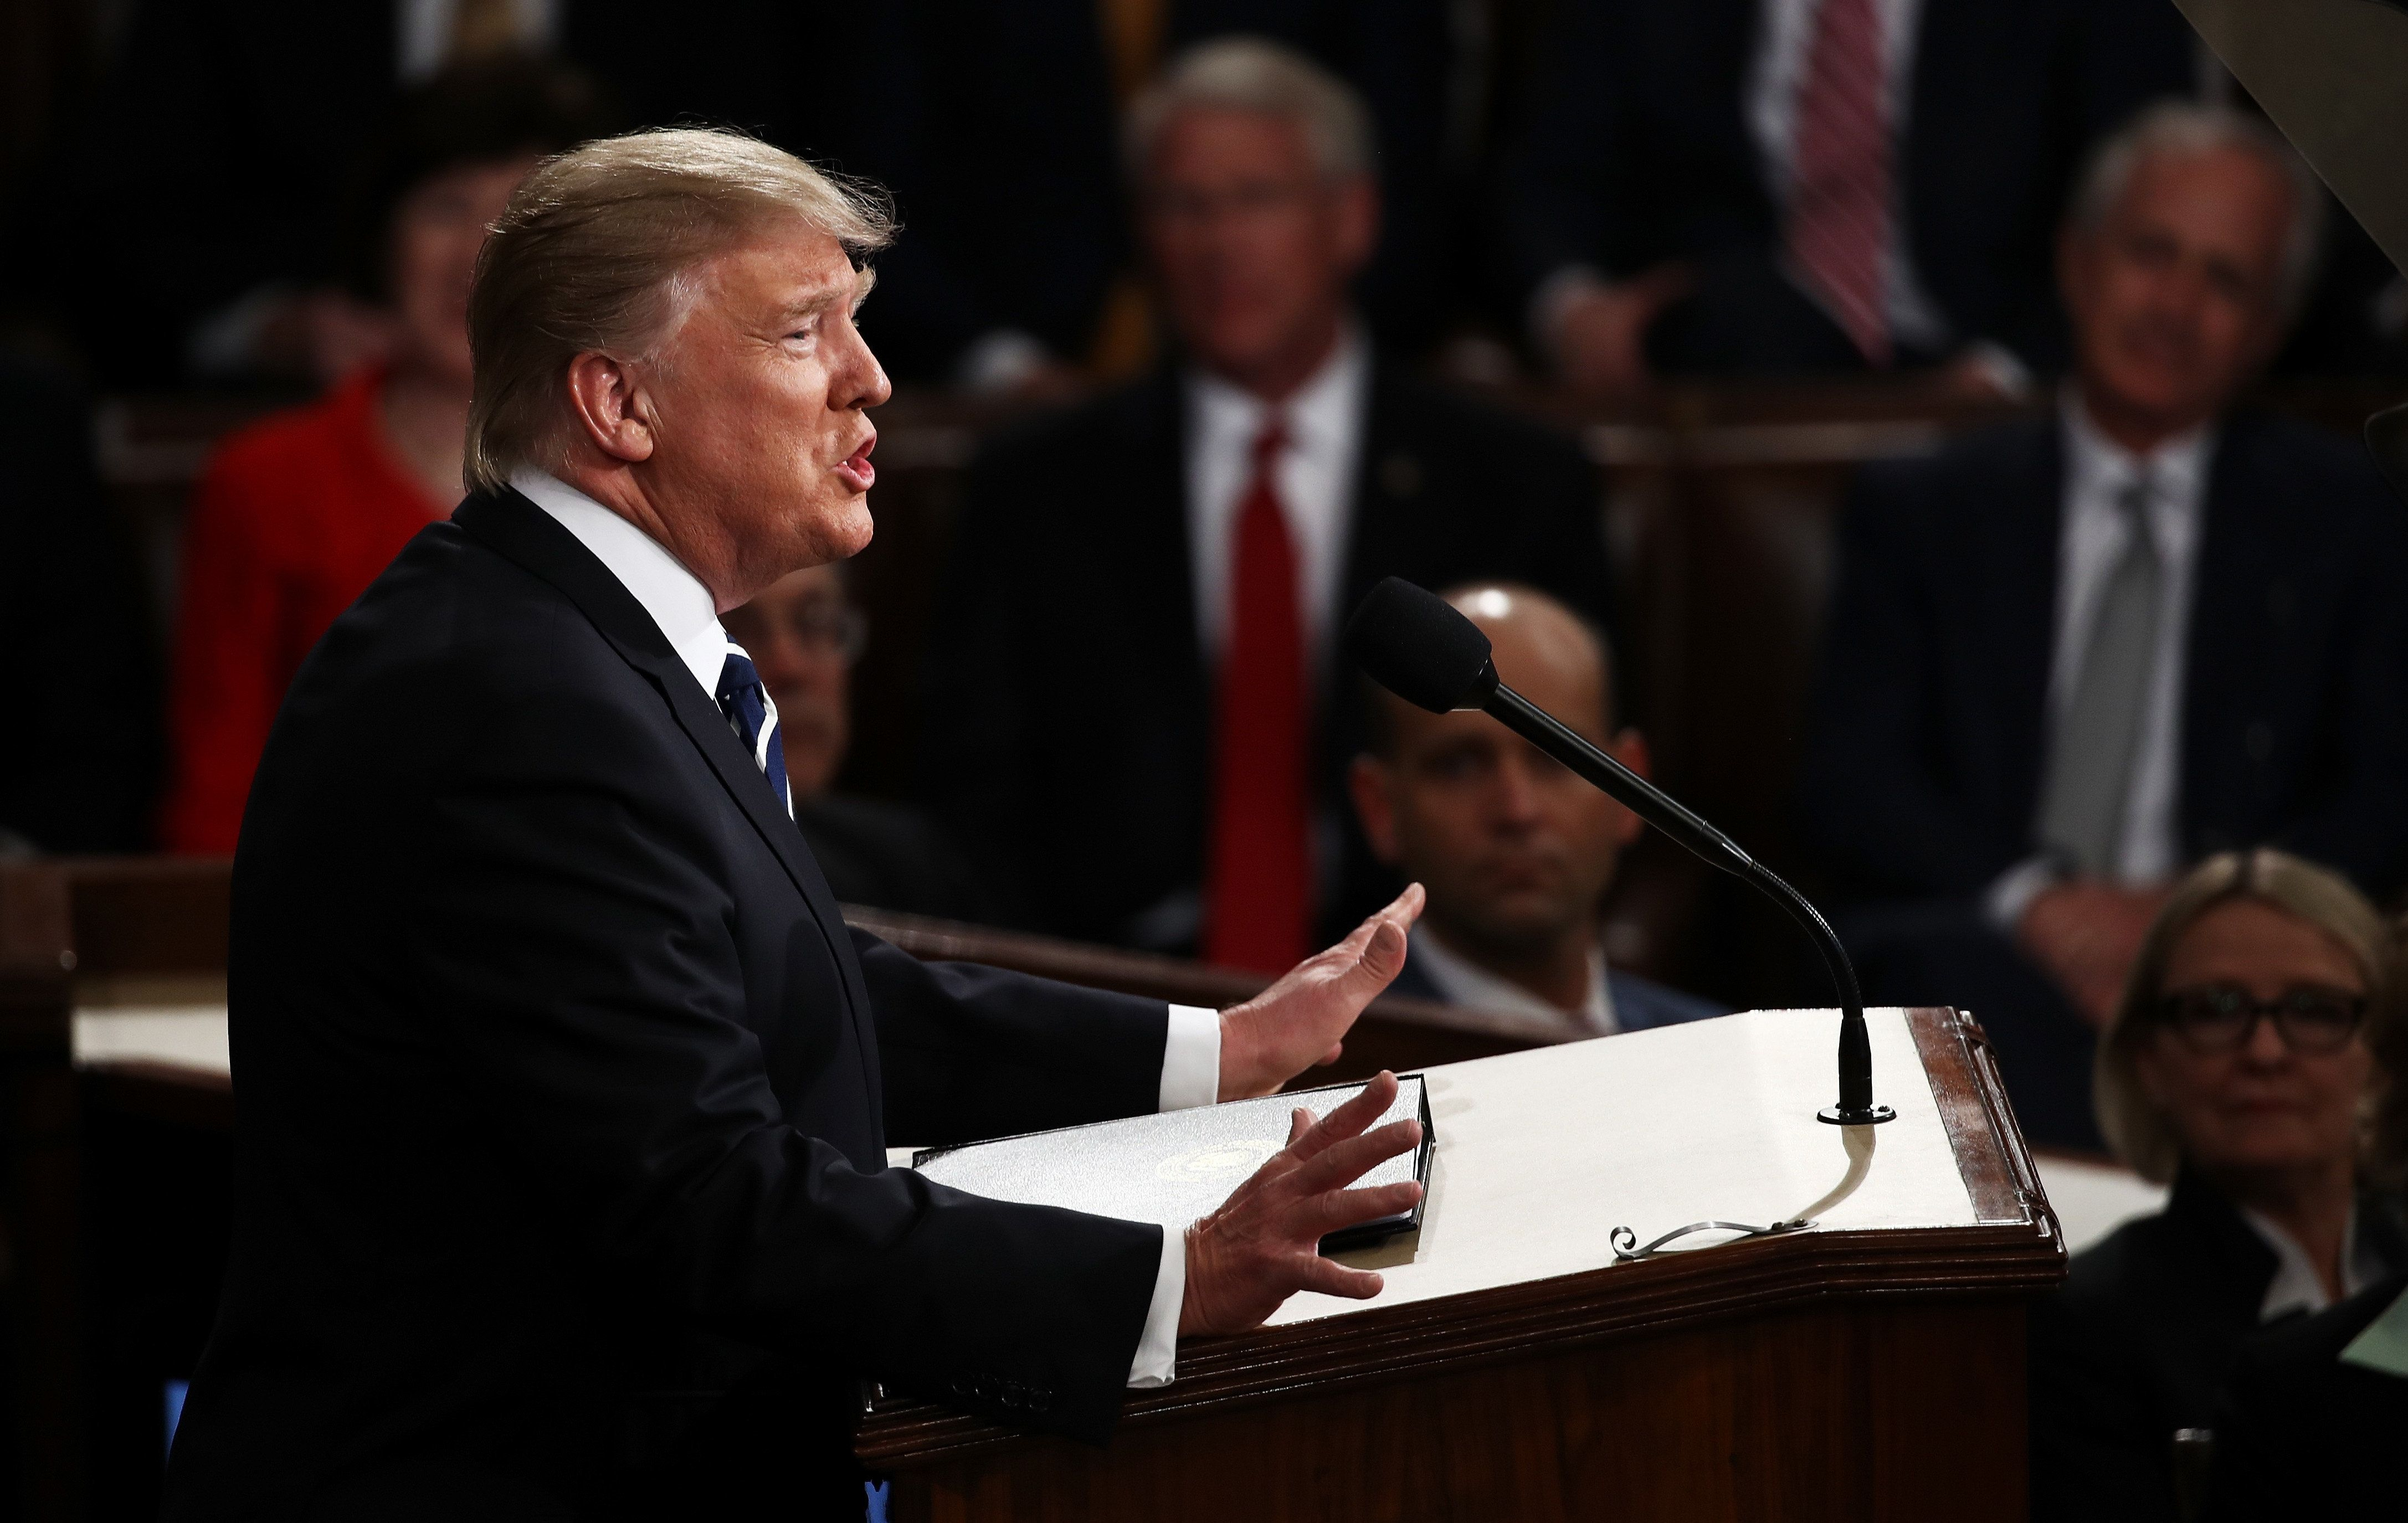 WASHINGTON, DC - FEBRUARY 28:  U.S. President Donald Trump arrives to addresses a joint session of the U.S. Congress on February 28, 2017 in the House chamber of  the U.S. Capitol in Washington, DC. Trump's first address to Congress is expected to focus on national security, tax and regulatory reform, the economy, and healthcare.  (Photo by Win McNamee/Getty Images)